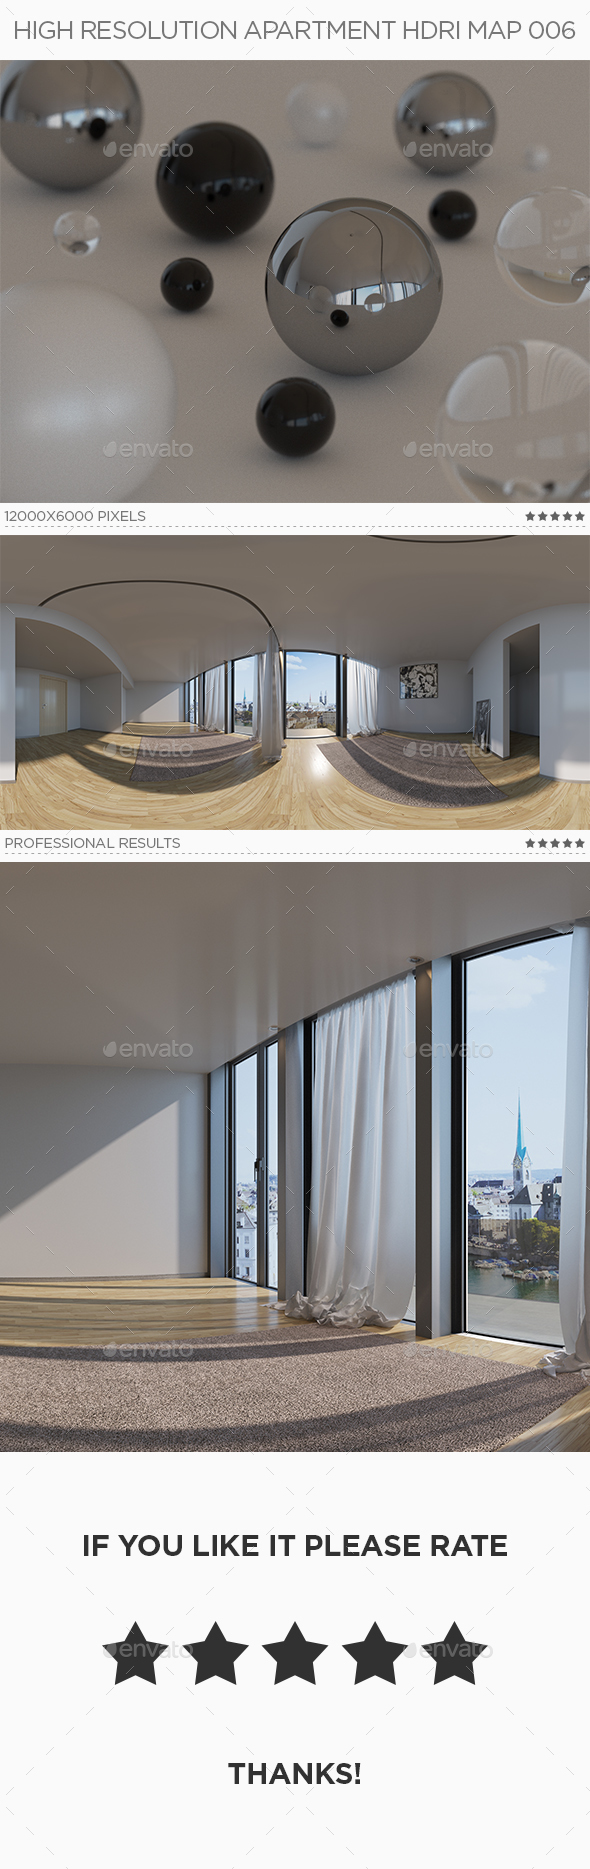 High Resolution Apartment HDRi Map 006 - 3DOcean Item for Sale